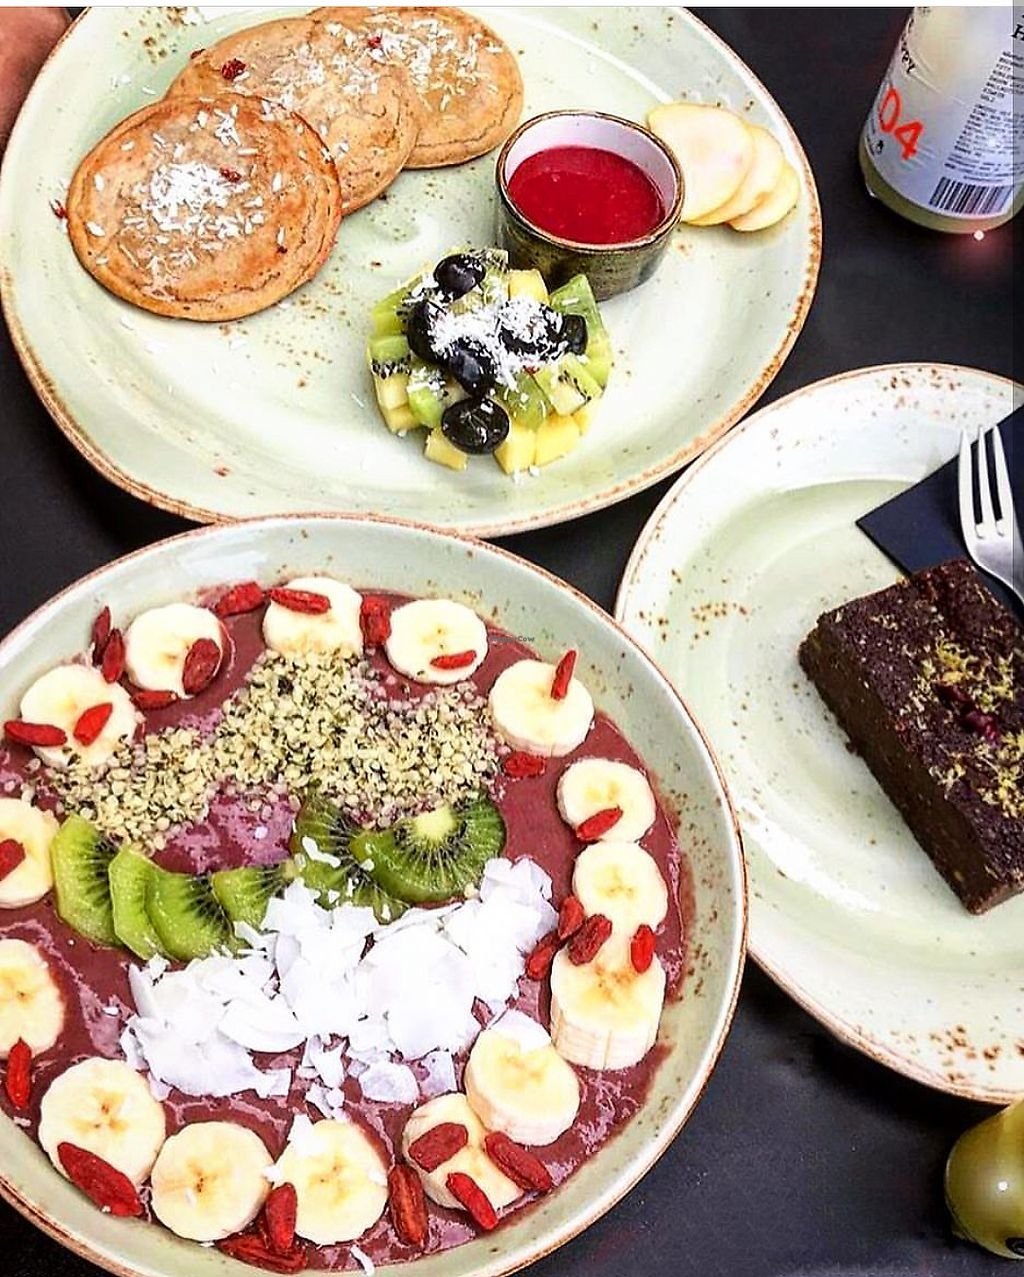 """Photo of Lebeleicht Hamburg  by <a href=""""/members/profile/KatharinaHinte"""">KatharinaHinte</a> <br/>Smoothiebowl, Pancakes und Sweets im Lebeleicht Hamburg  <br/> October 29, 2017  - <a href='/contact/abuse/image/103727/319749'>Report</a>"""